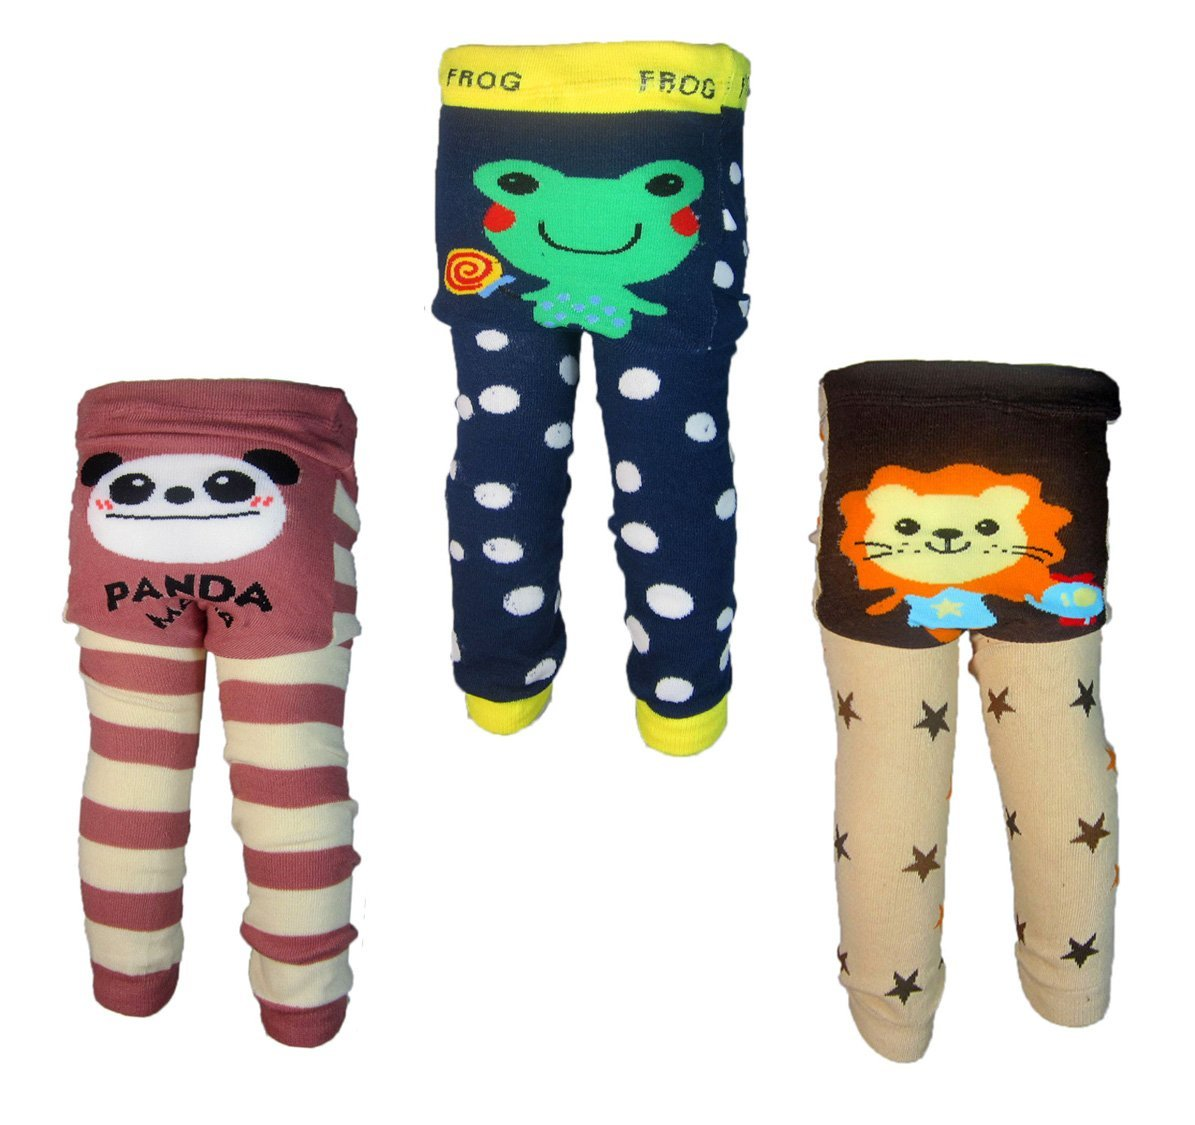 [Backbuy] 3 Pants 0-24 Months Baby Boys Toddler Leggings trousers Knitted pants G6H2H3 (12-18 Months)